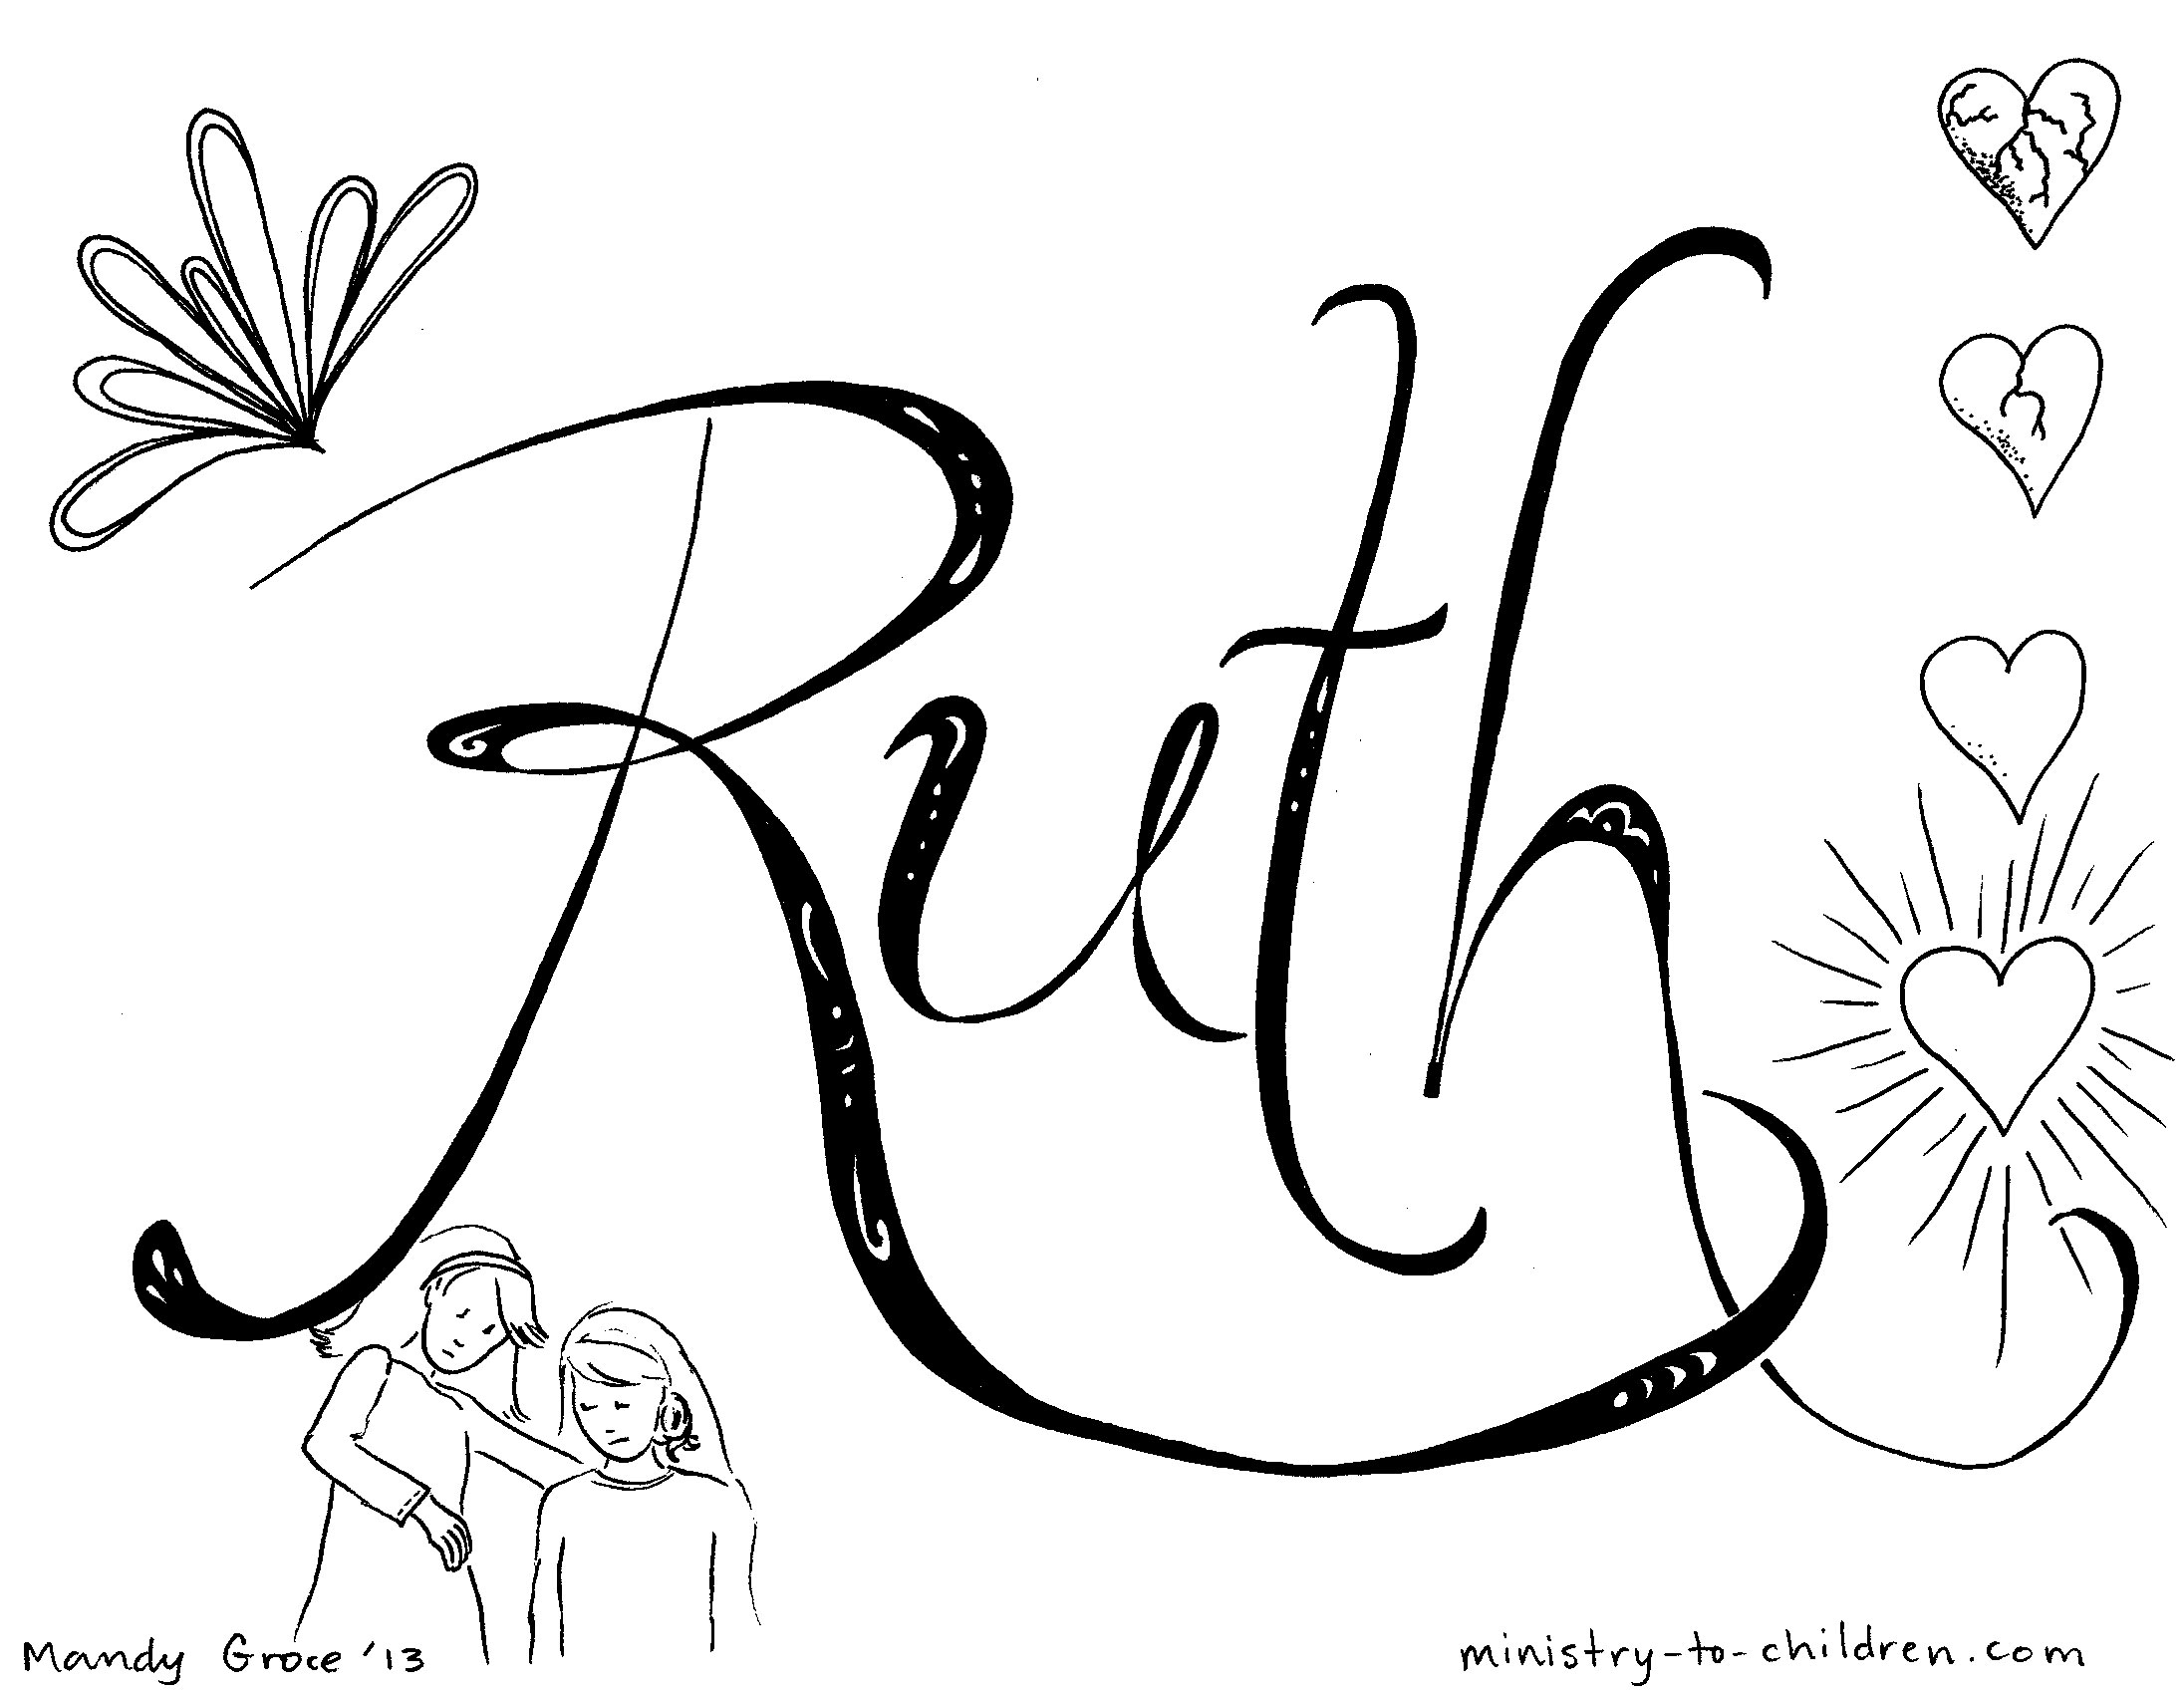 ruth morehead coloring pages - photo#30